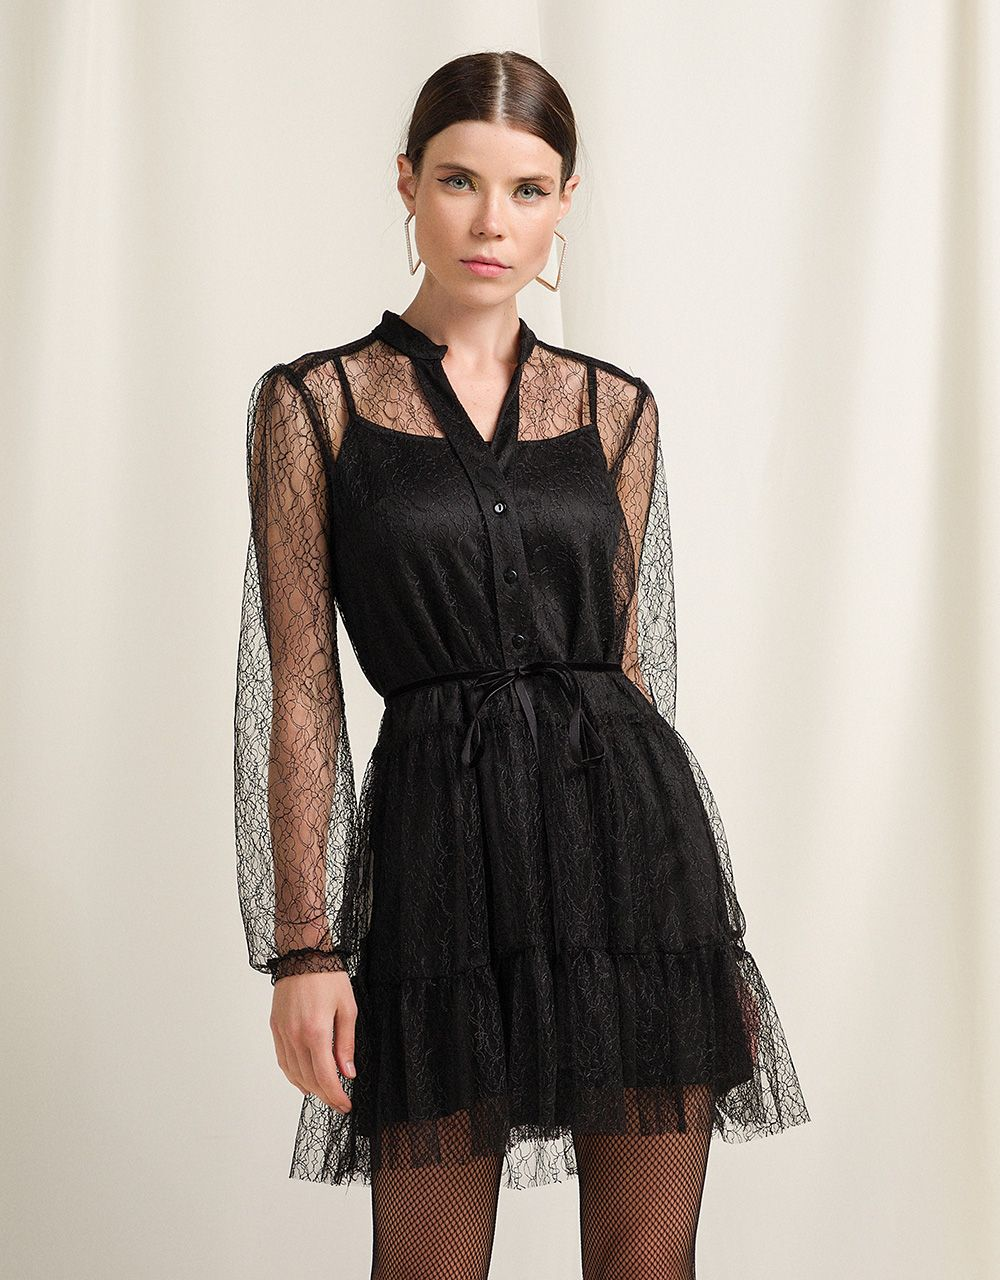 DRESS WITH LACE AND FRILLS